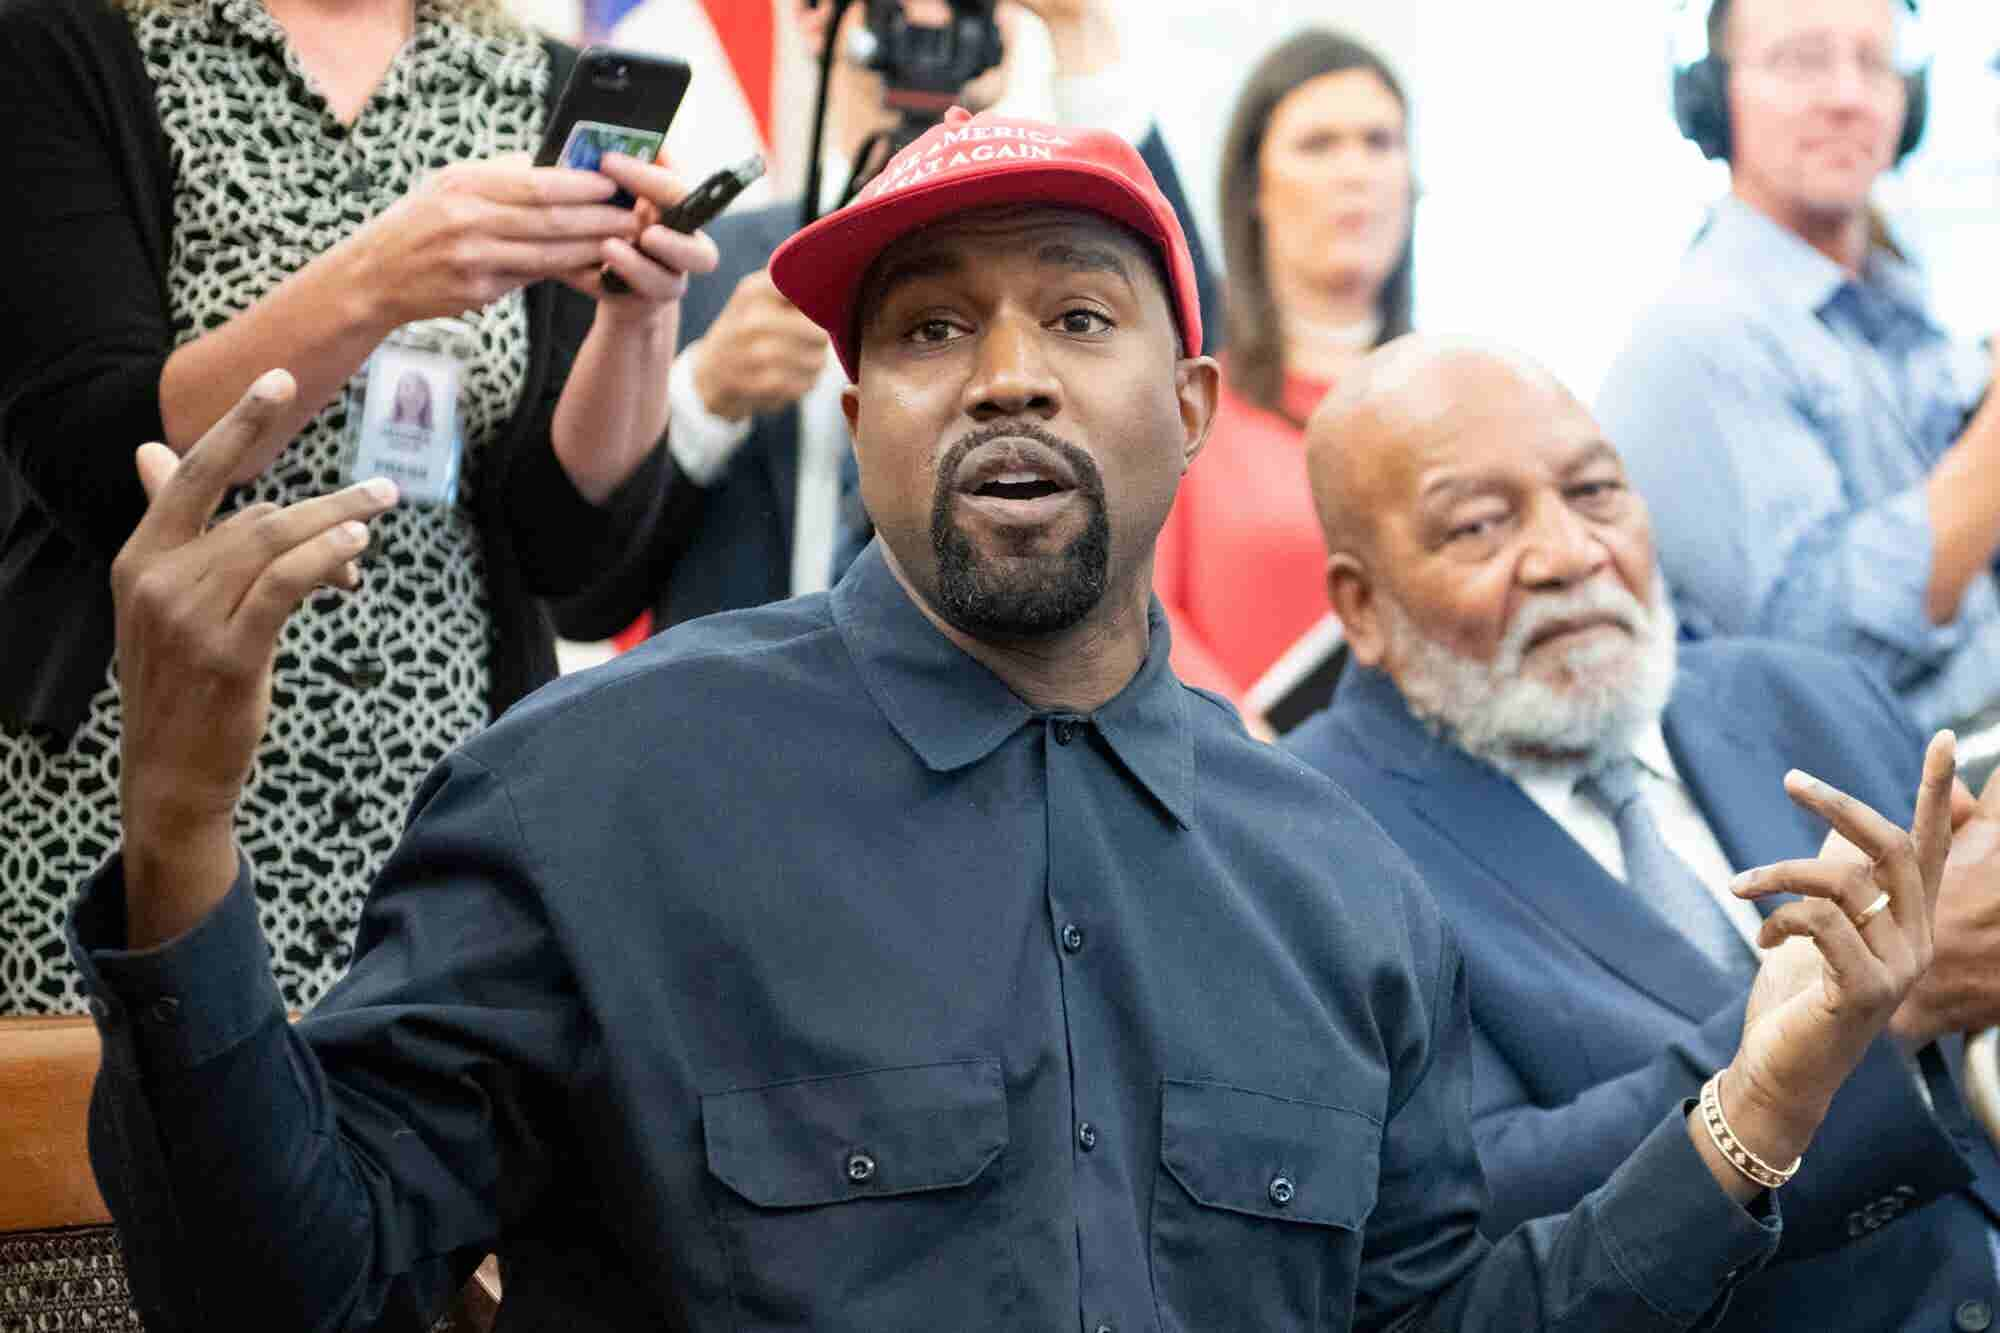 Kanye West Is Hard to Ignore. Here's What You Can Learn From His Antic...